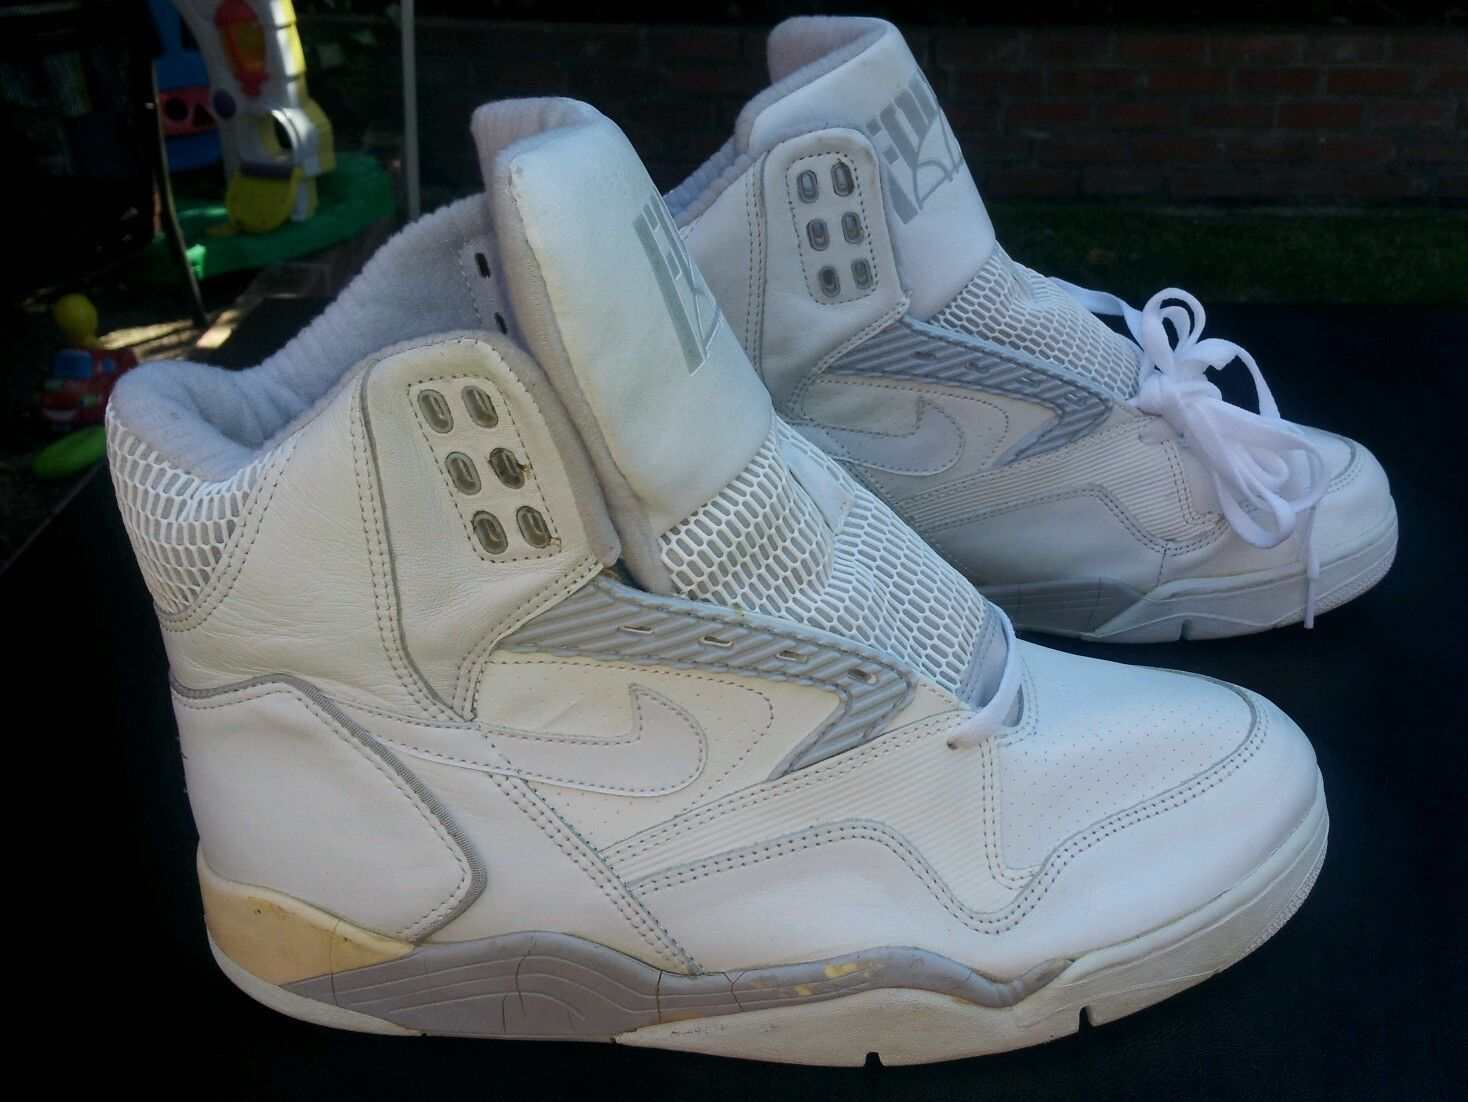 on sale b8362 14a29 Vintage Nike Air Ultra Force Hi White on White 1990 Basketball Shoes Size  13 | eBay